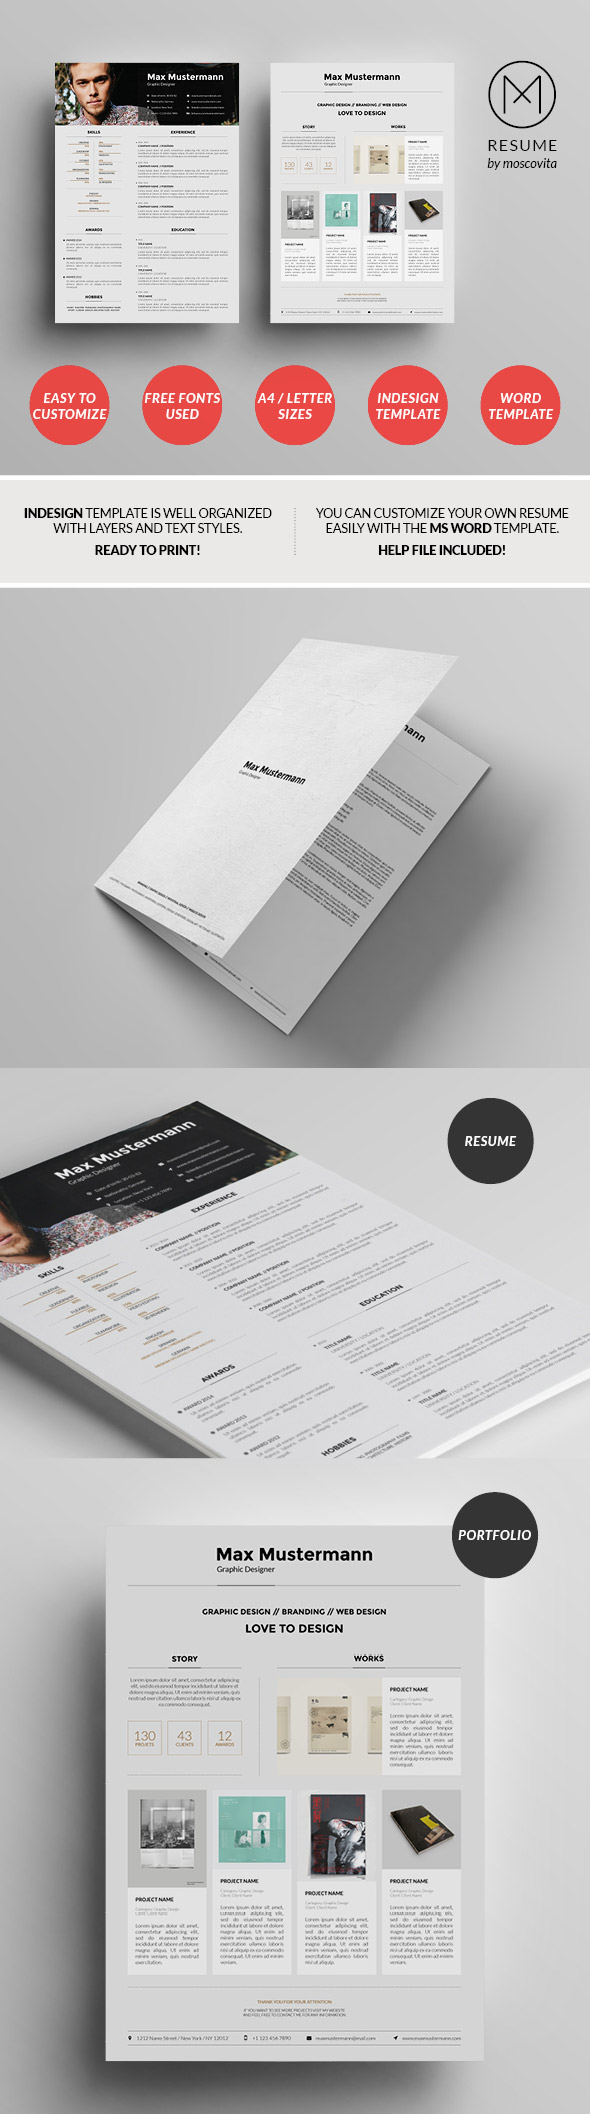 25 creative resume templates to land a new job in style structured creative resume template design pronofoot35fo Choice Image